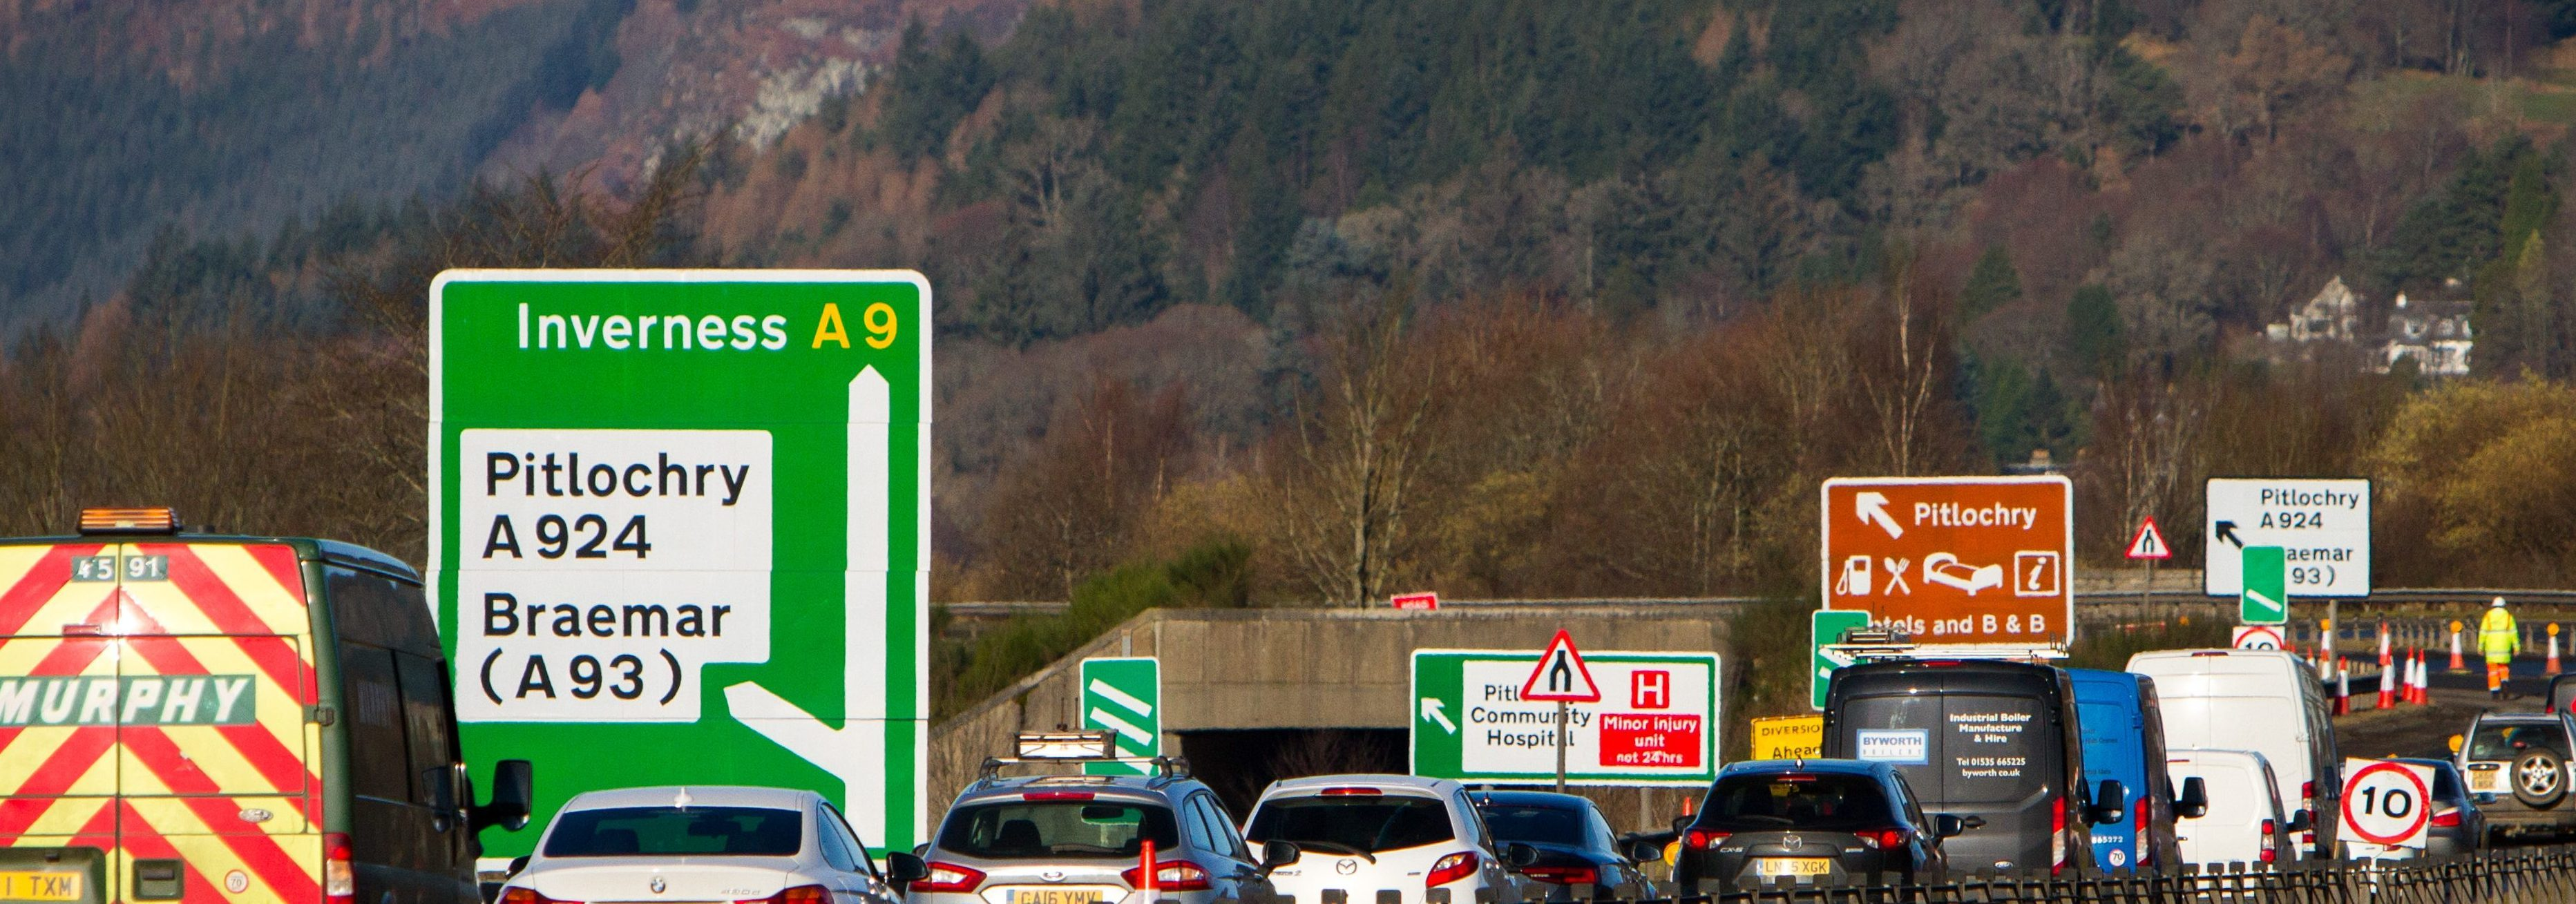 Previous roadworks at Pitlochry on the A9.